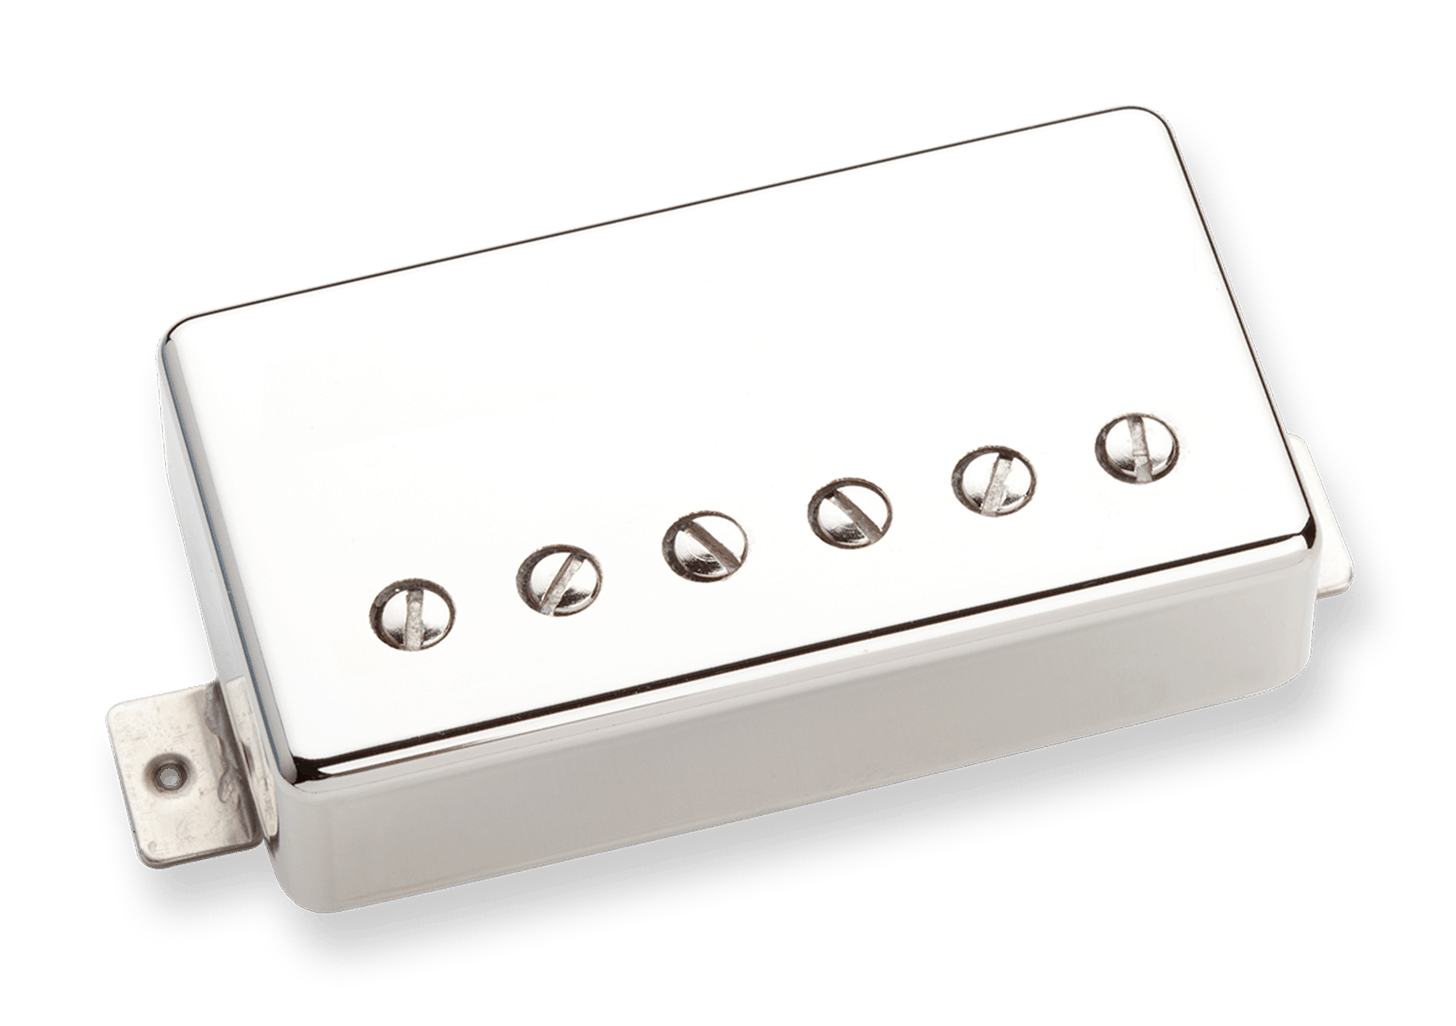 Alnico 5 Medium Output Humbucker Pickup 11102 84 NC